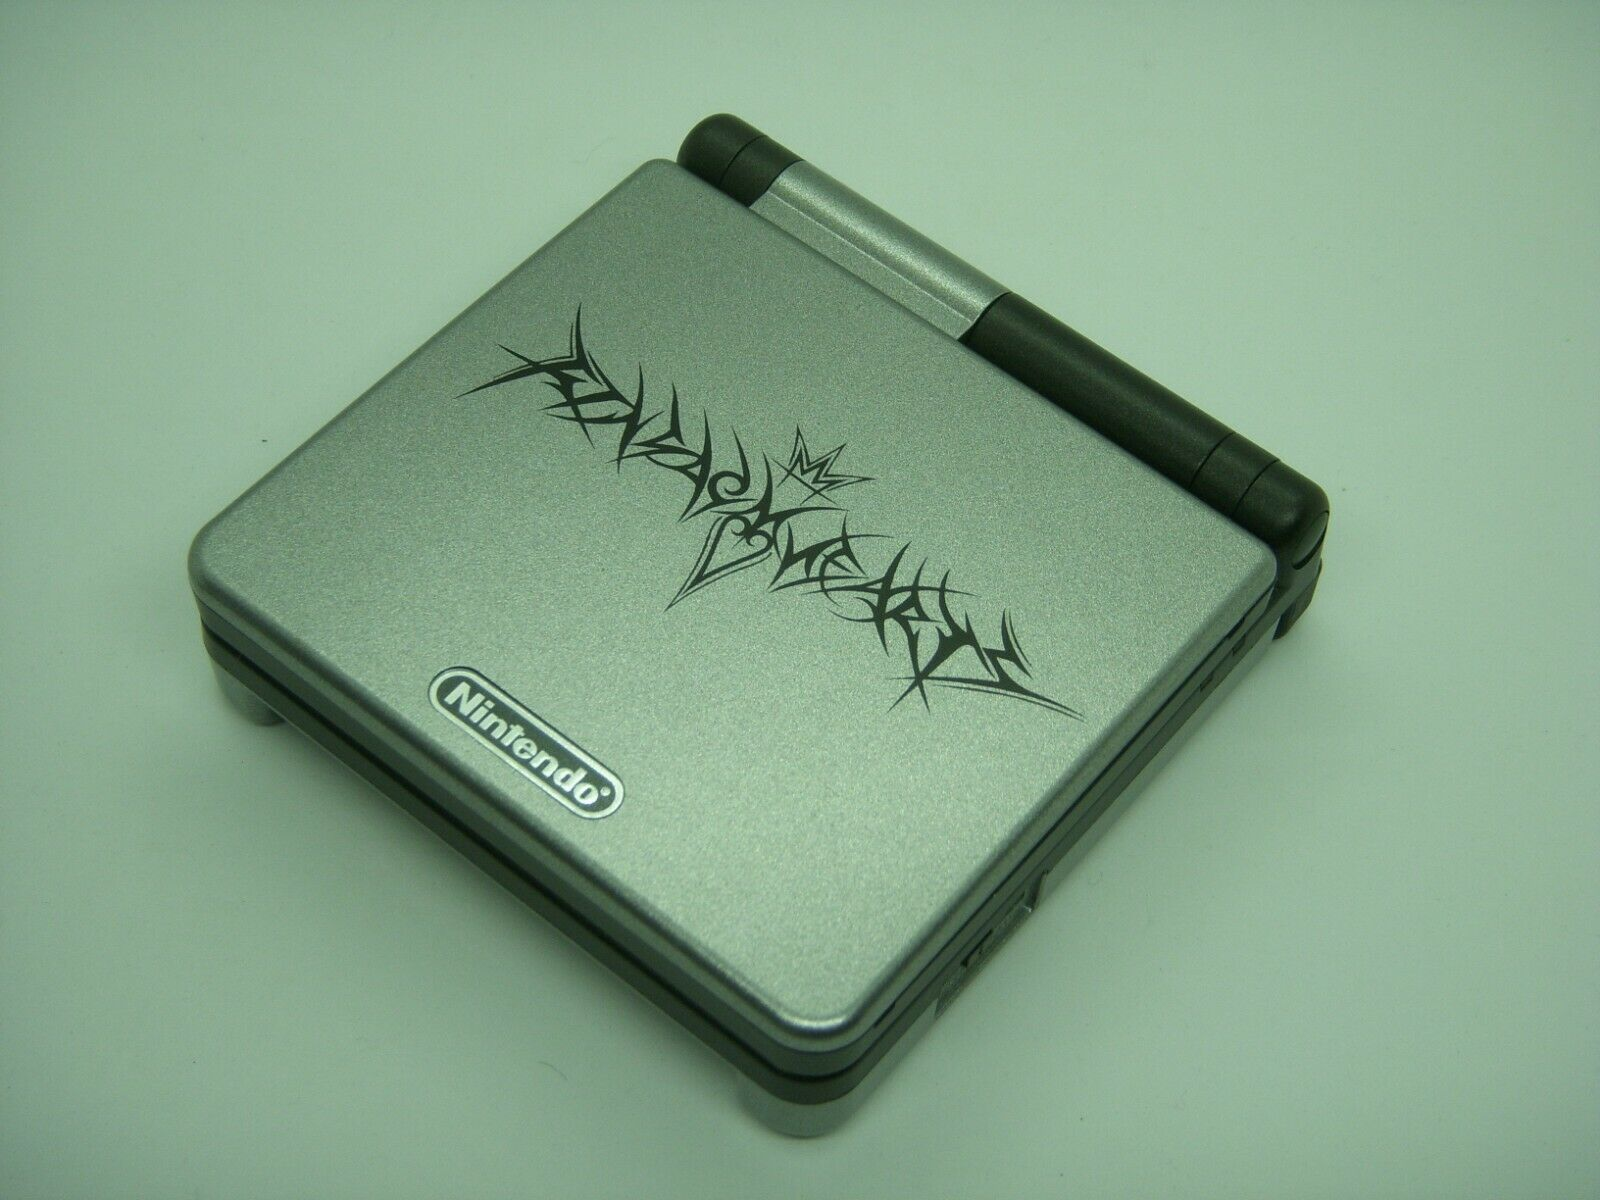 NINTENDO GAME BOY Advance SP KINGDOM HEARTS CHAIN of MEMORIES Limited Model image 2